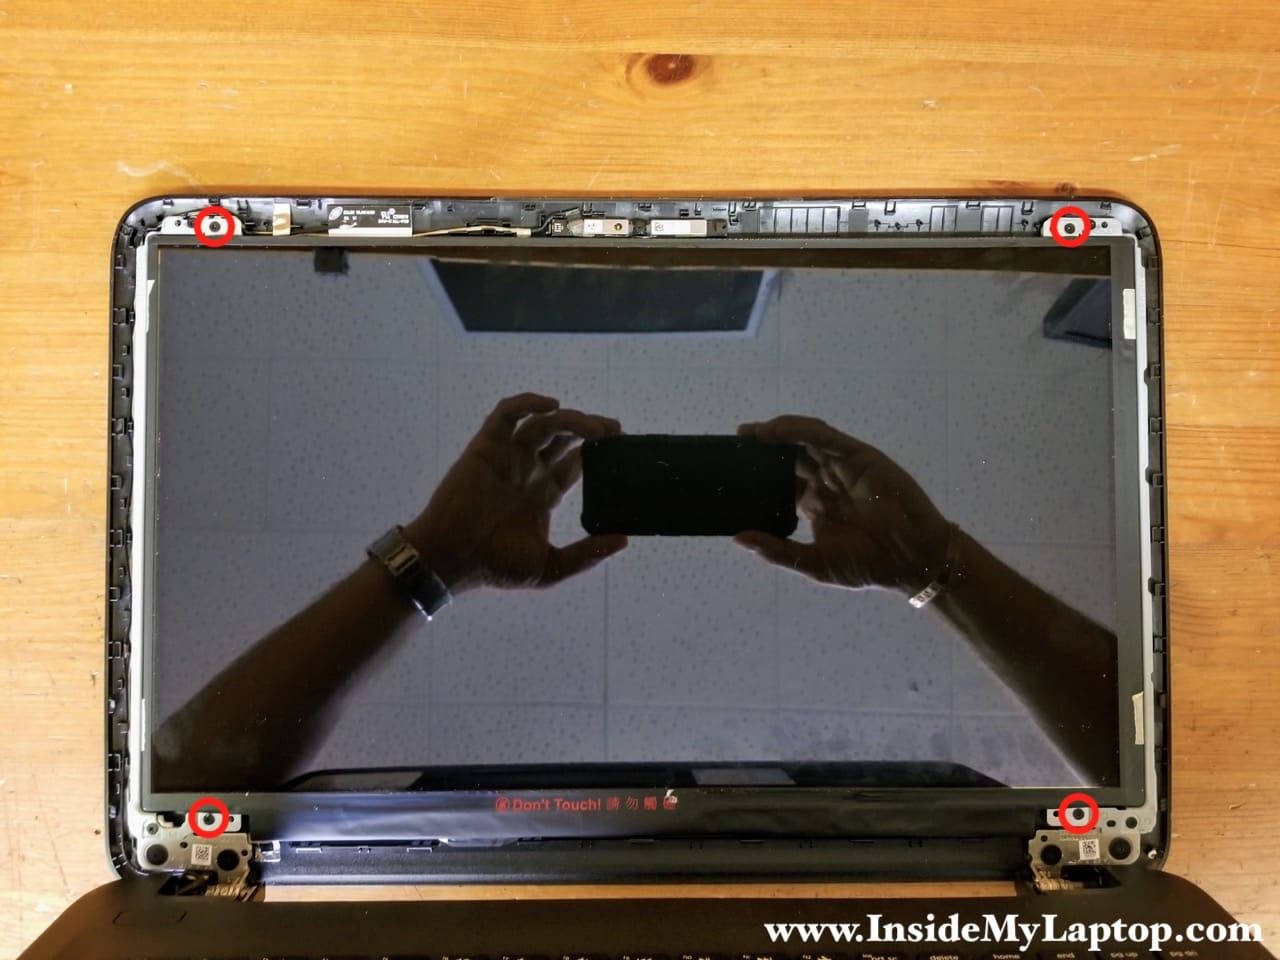 Full disassembly of HP 15 notebook PC – Inside my laptop